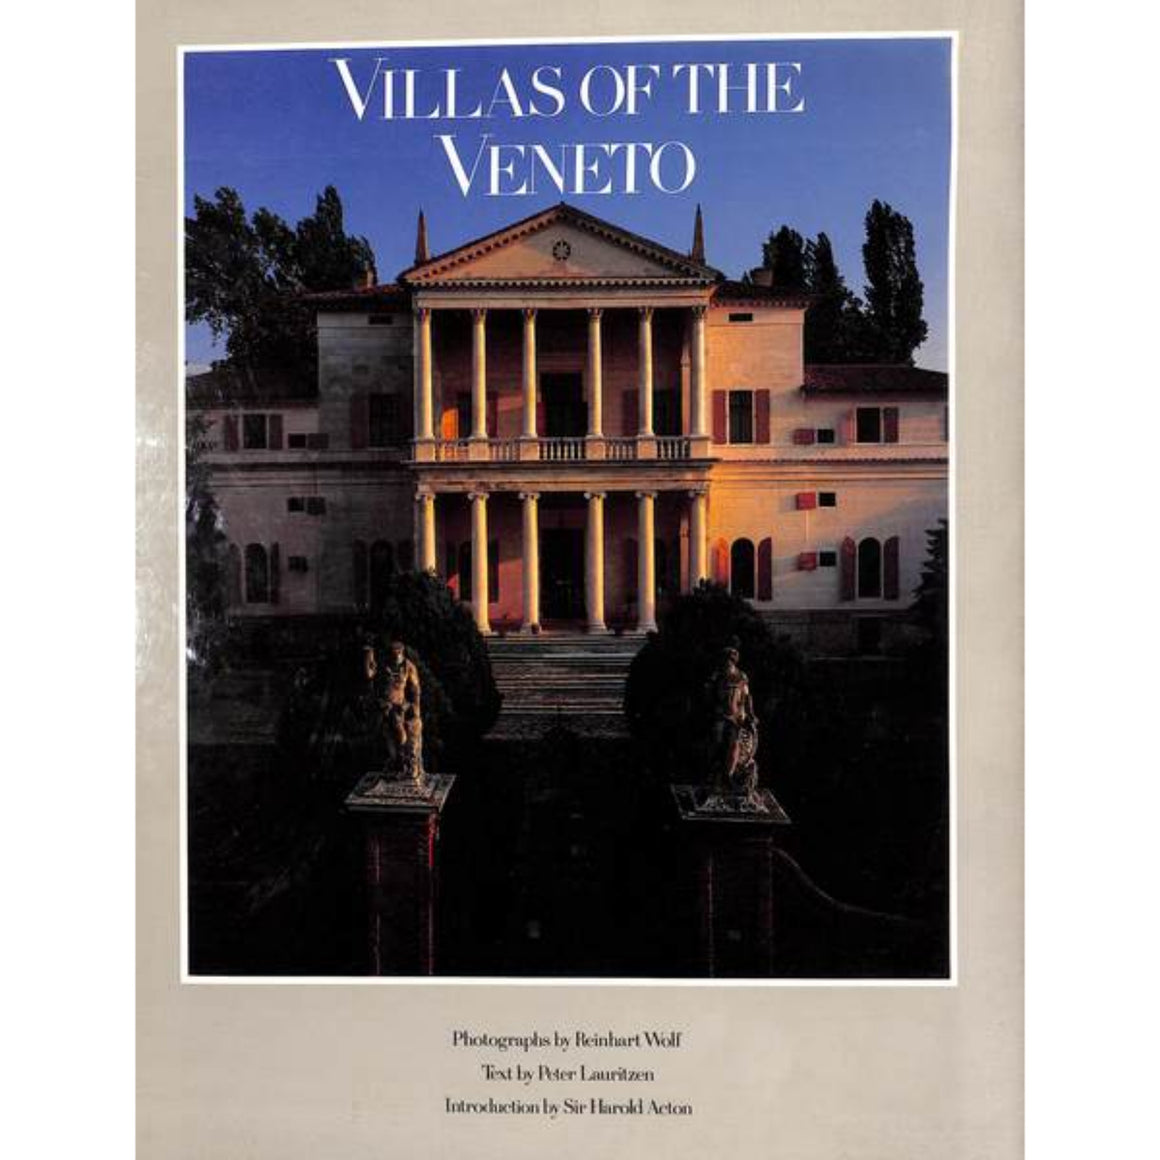 Villas of the Veneto